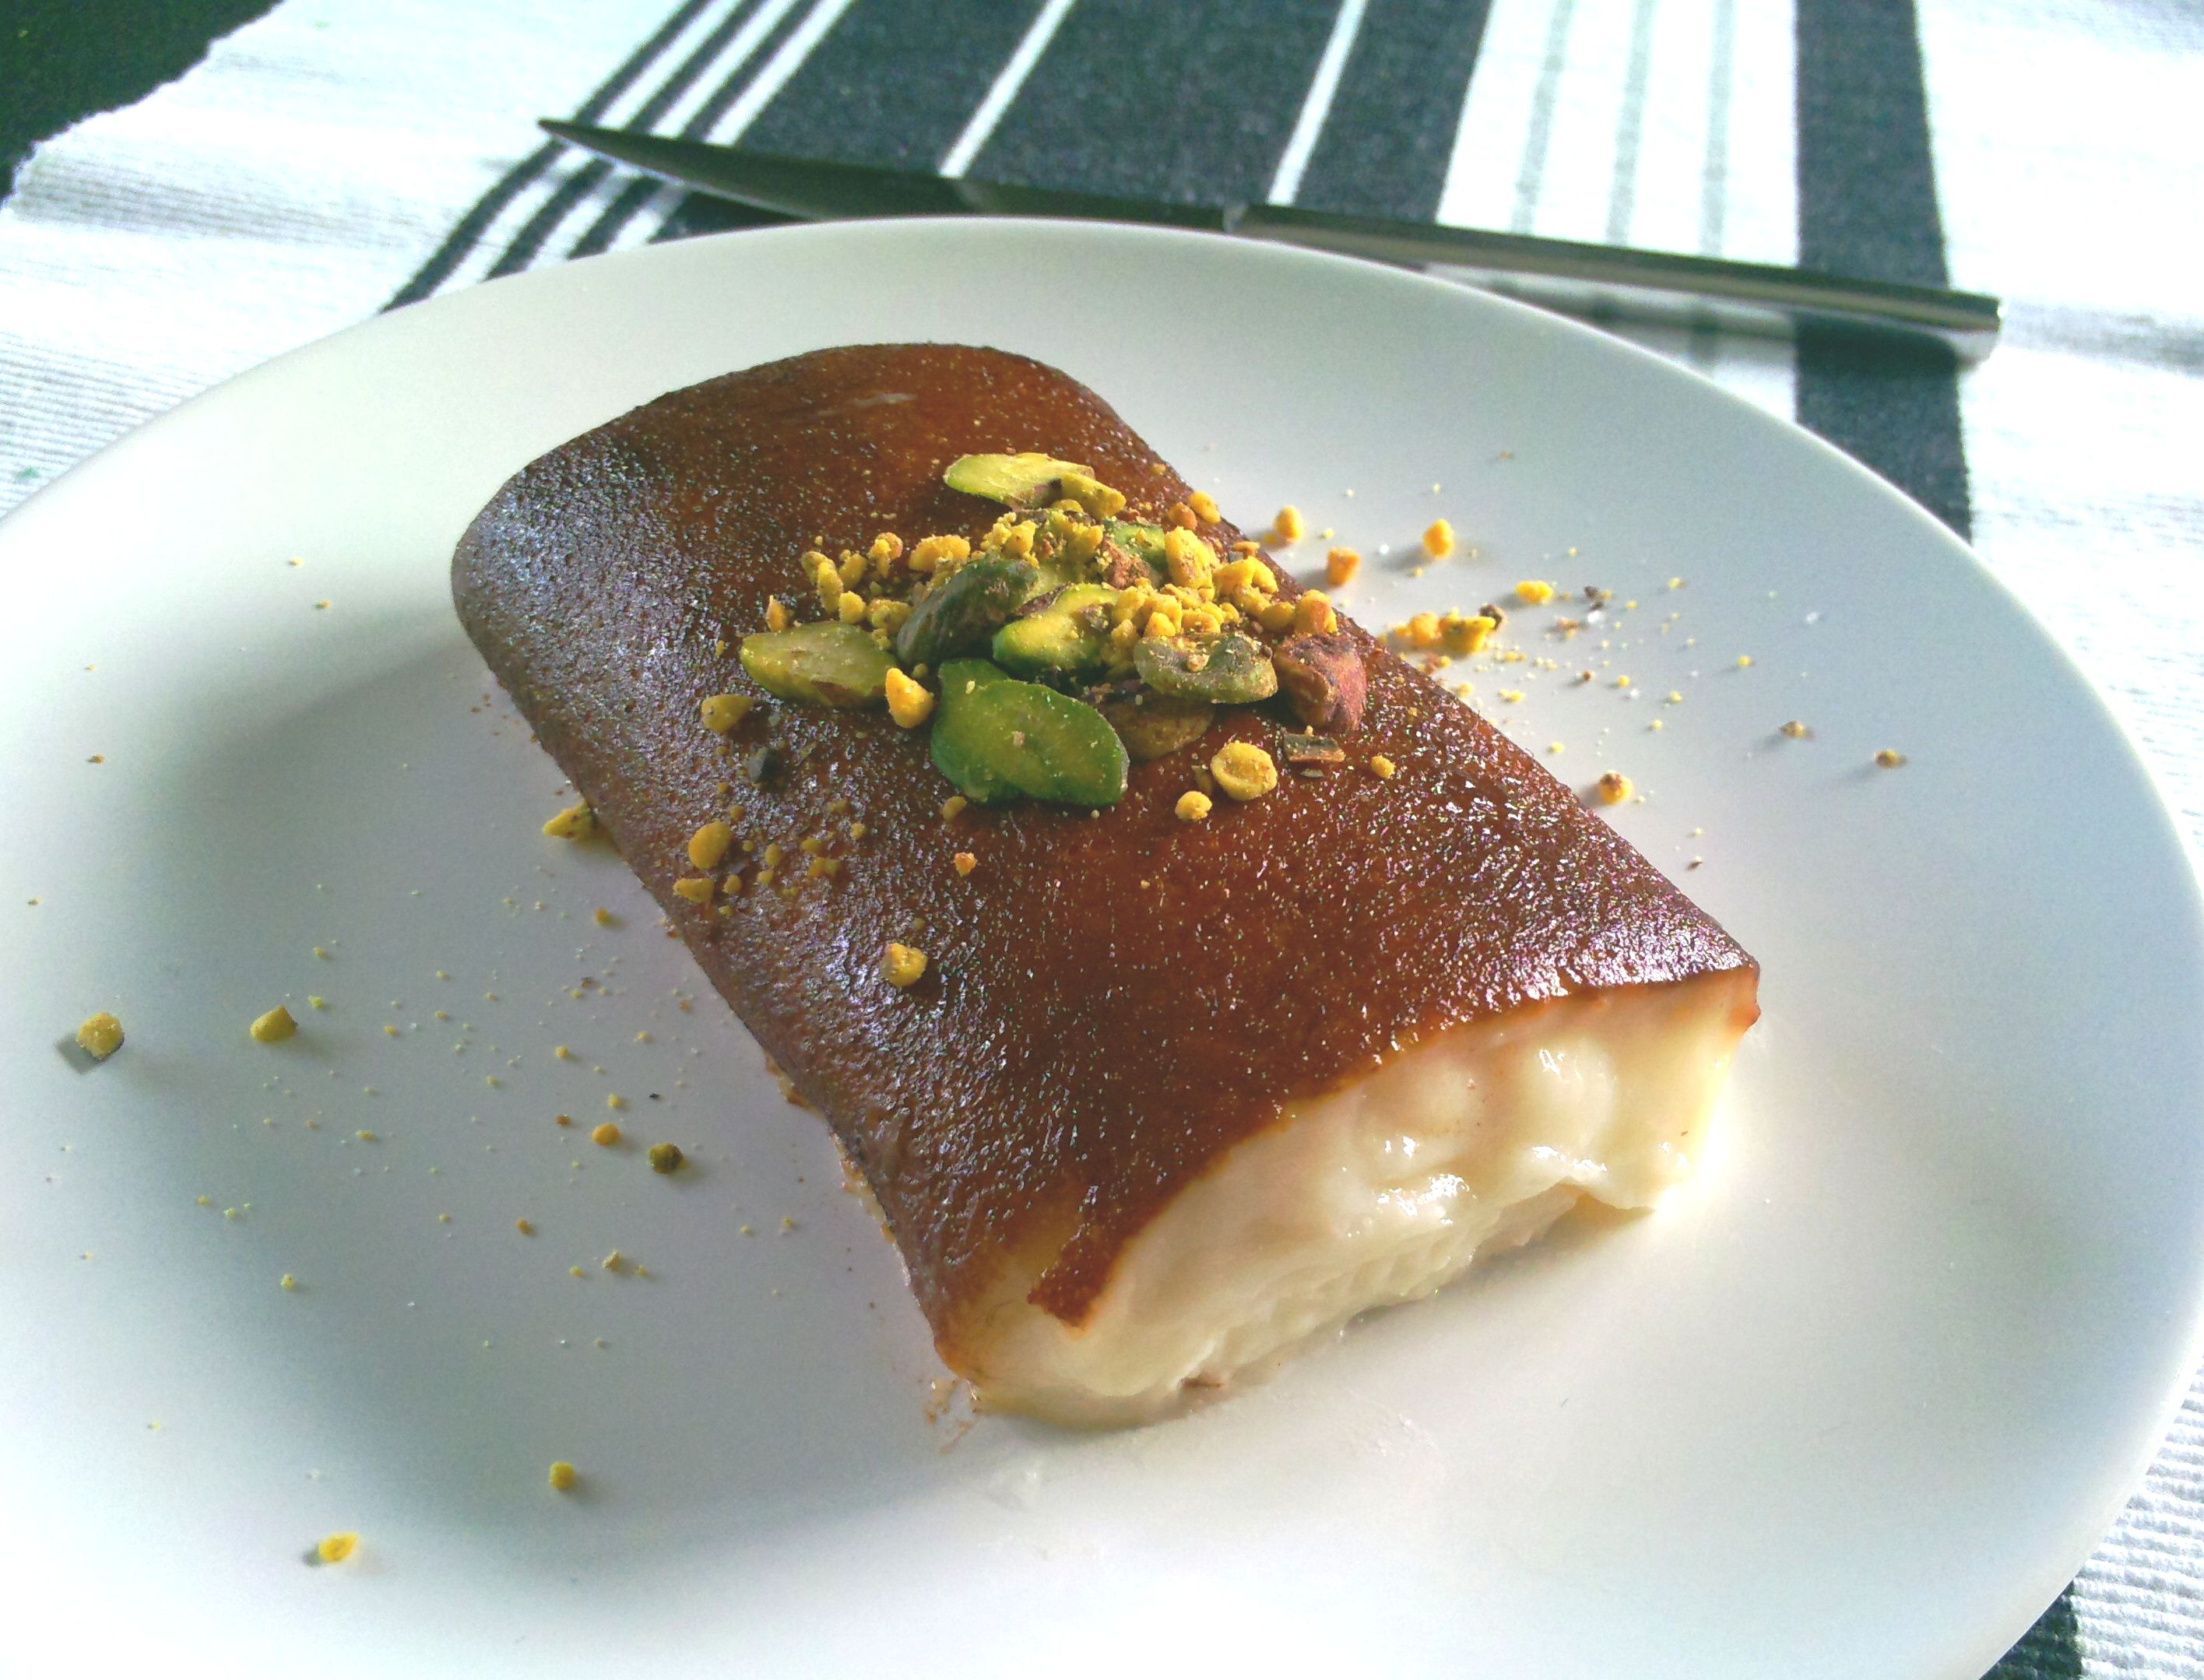 Turkish Kazandibi Dessert Recipe